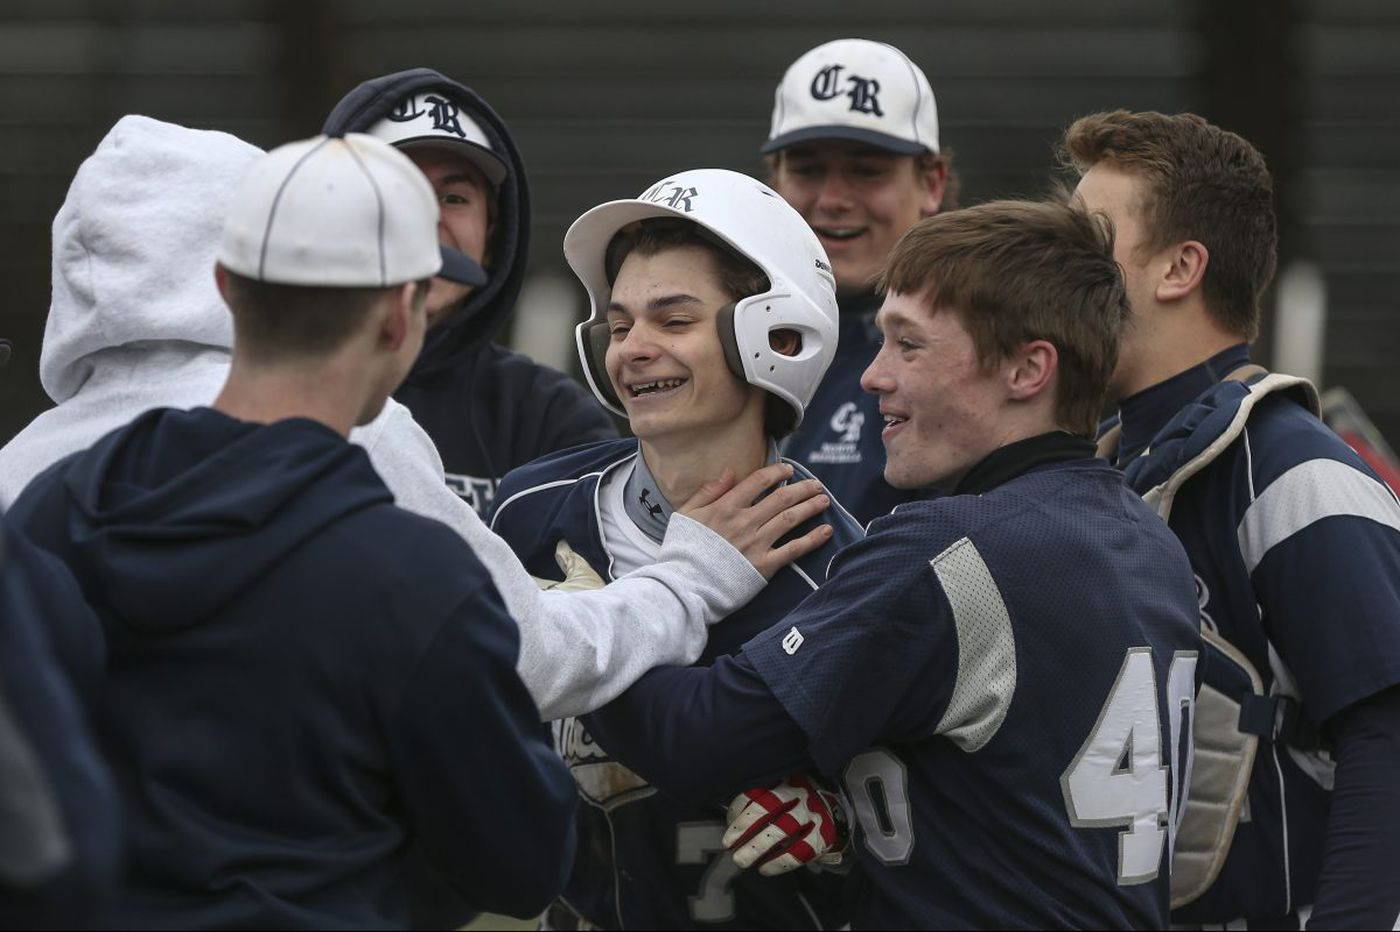 C.J. Donofry delivers in clutch for Council Rock North in win over Neshaminy